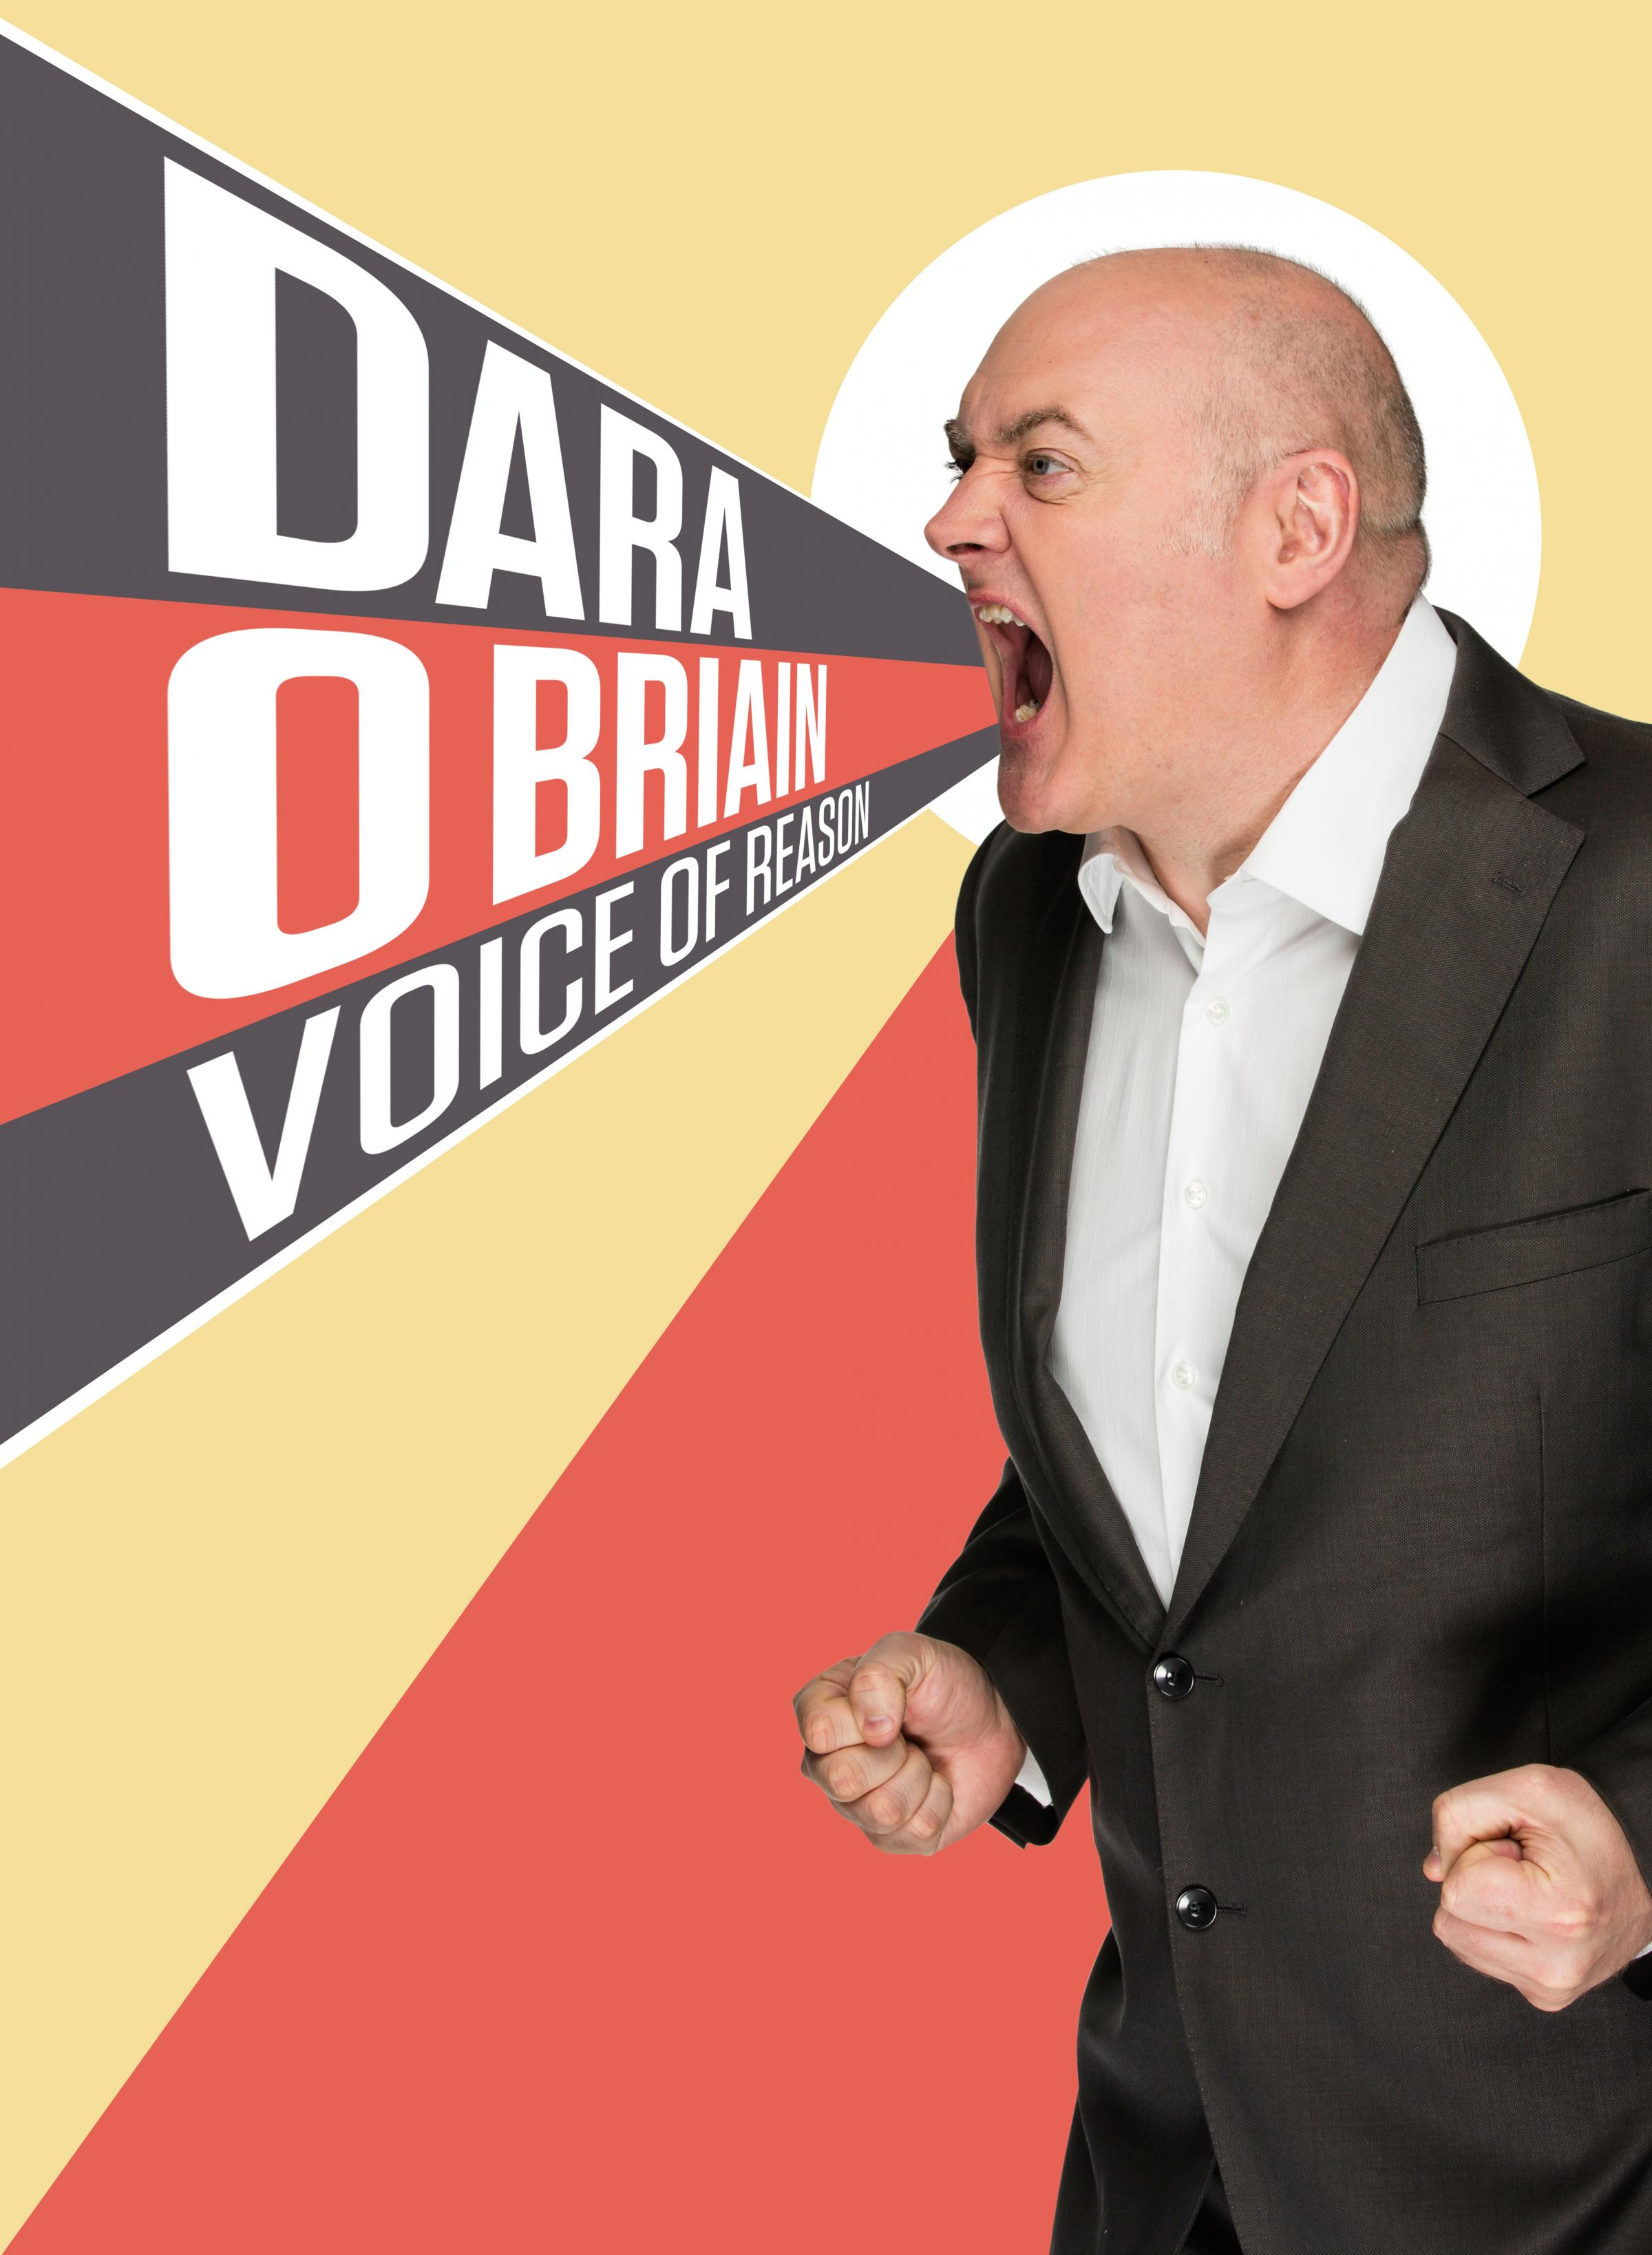 Blarney, but no baloney: Dara O Briain stands up for reason at York Barbican